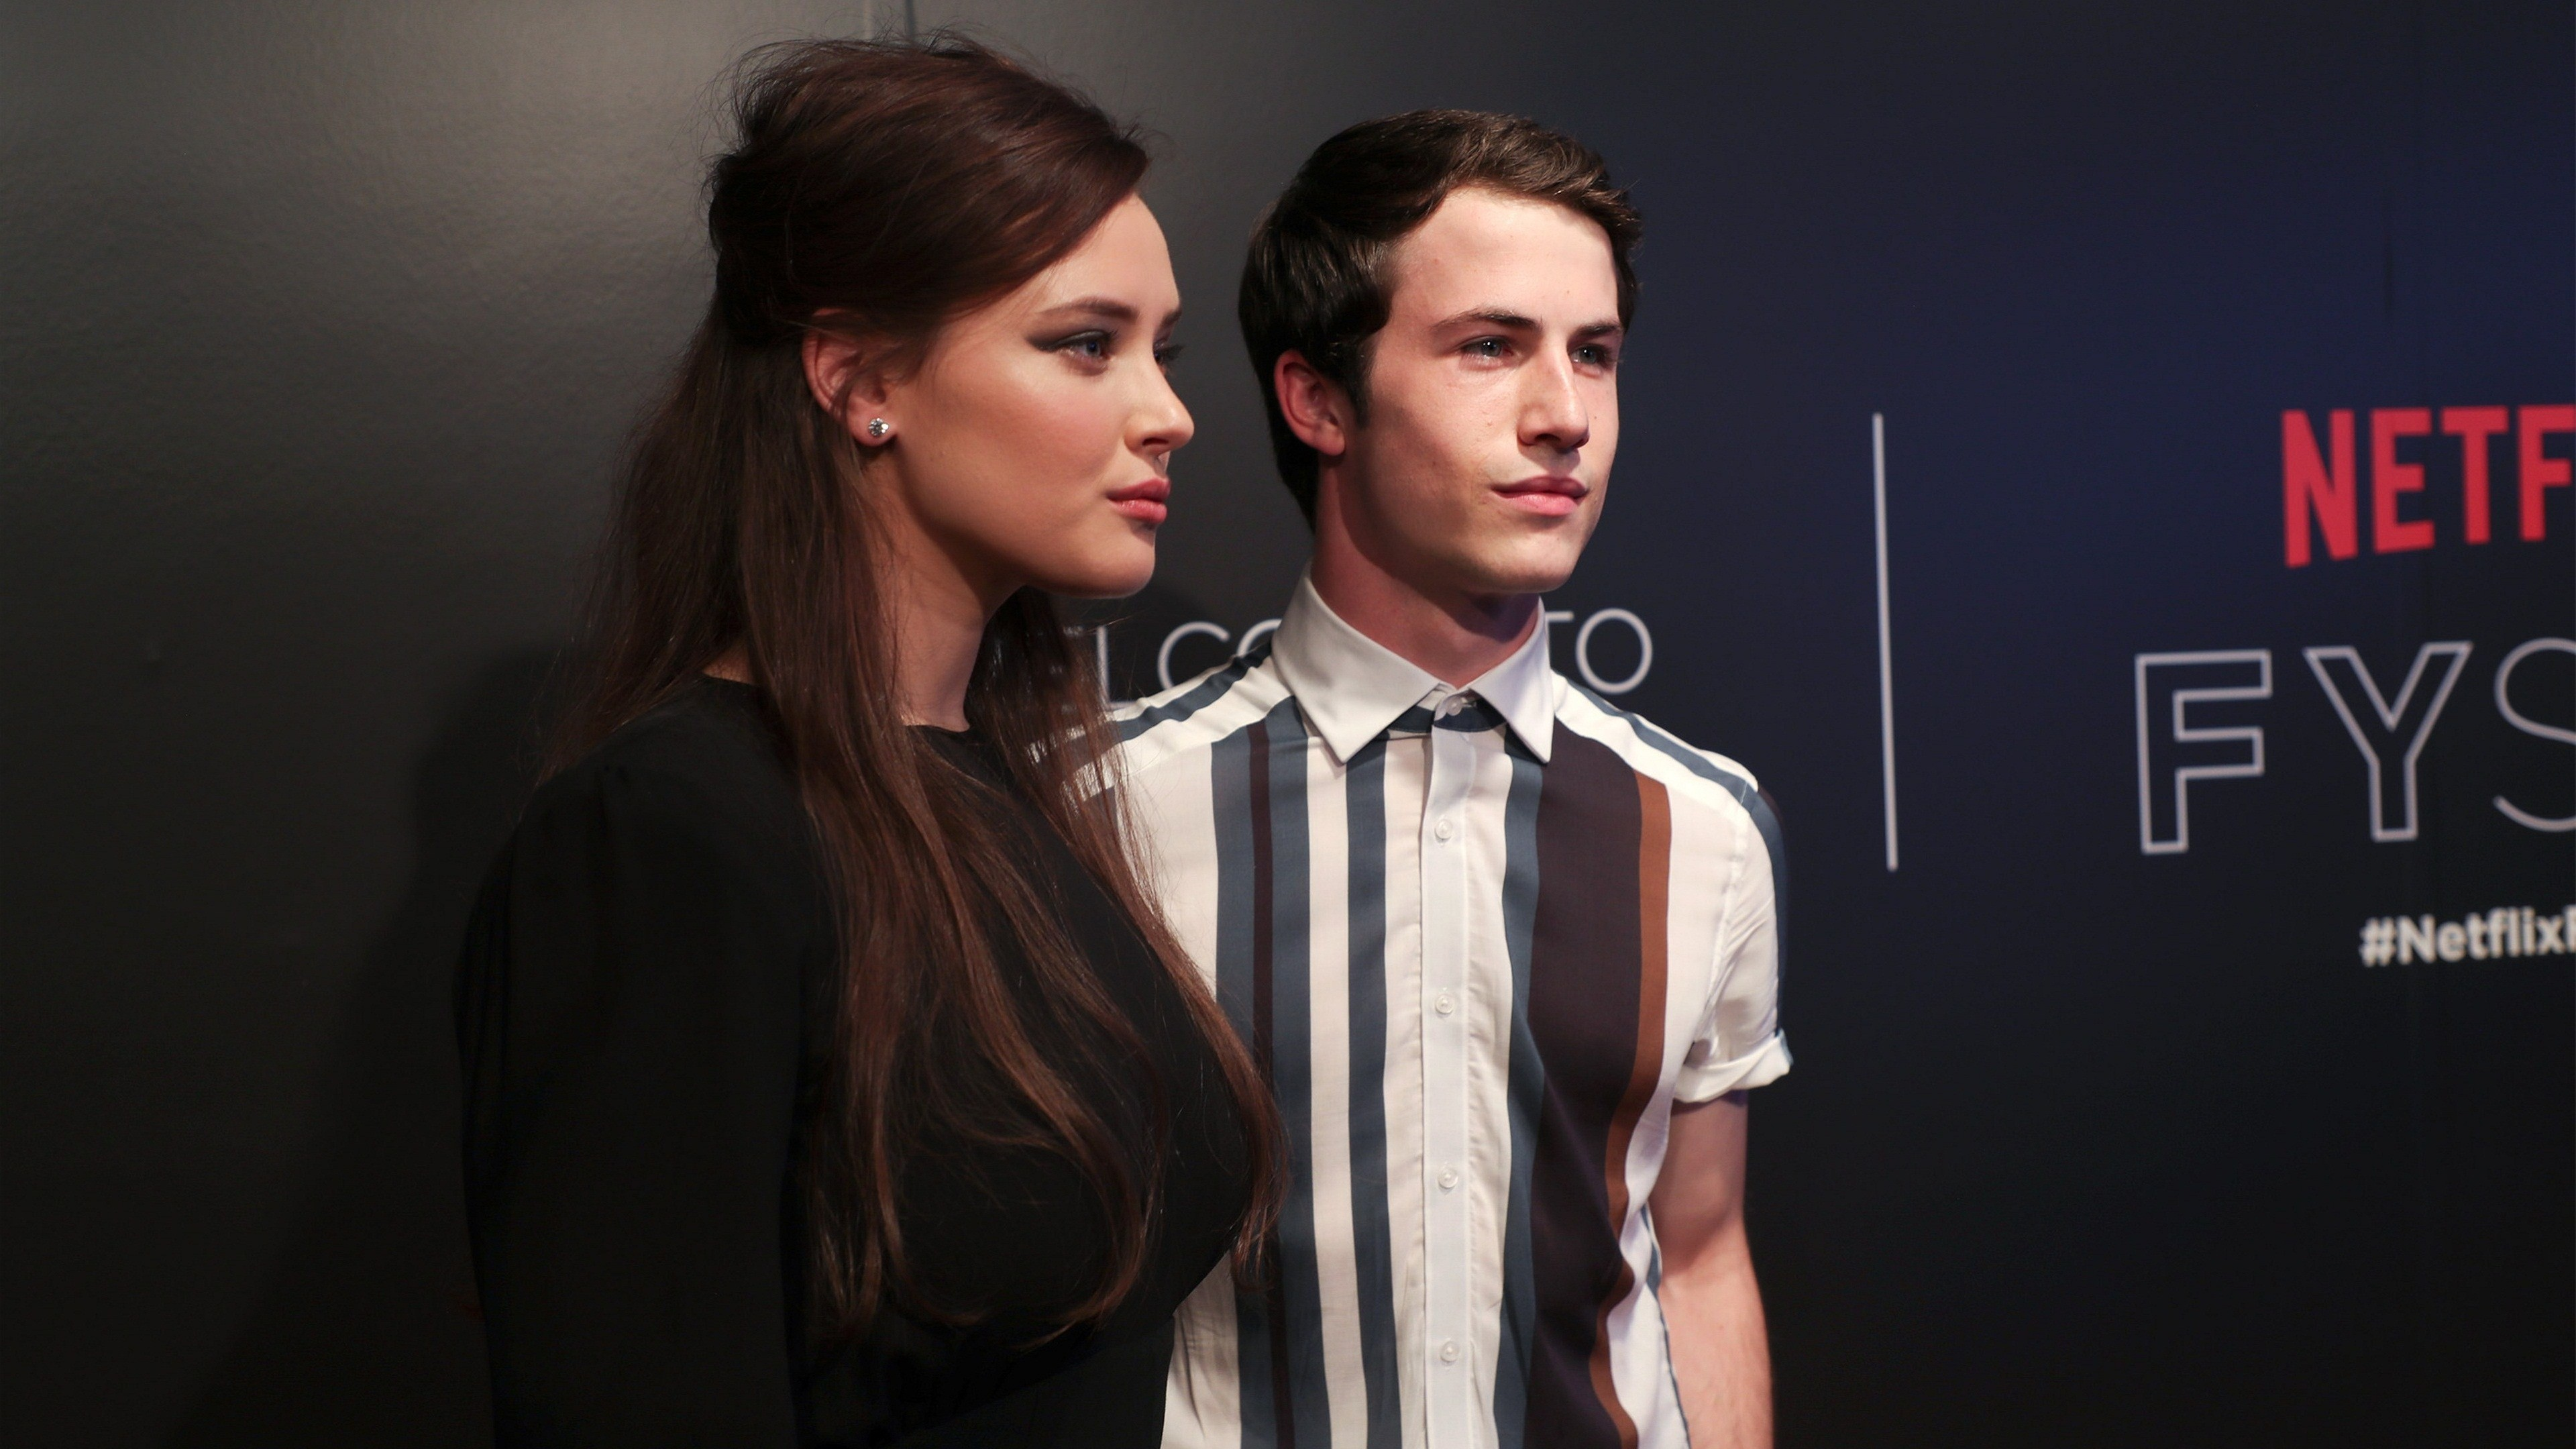 3840x2160 Katherine Langford and Dylan Minnette 13 Reasons Why FYC Event in LA 2017  4K Wallpaper